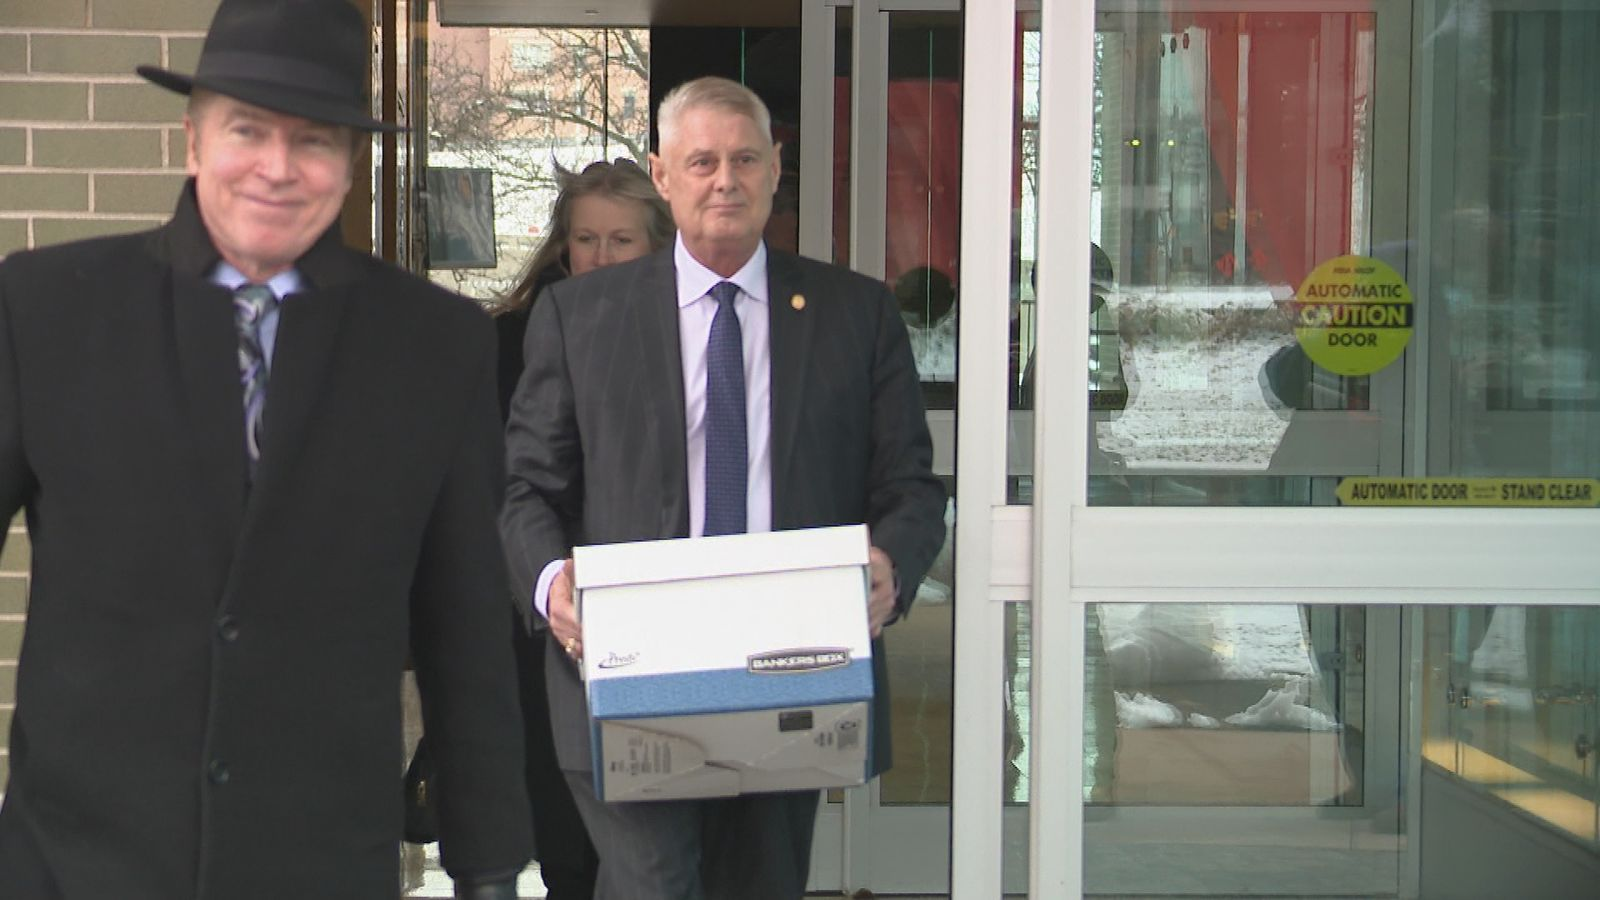 Rep. Larry Inman walked out of court Tuesday, Dec. 3 after the first day of his federal bribery trial. (WWMT/Jason Heeres)